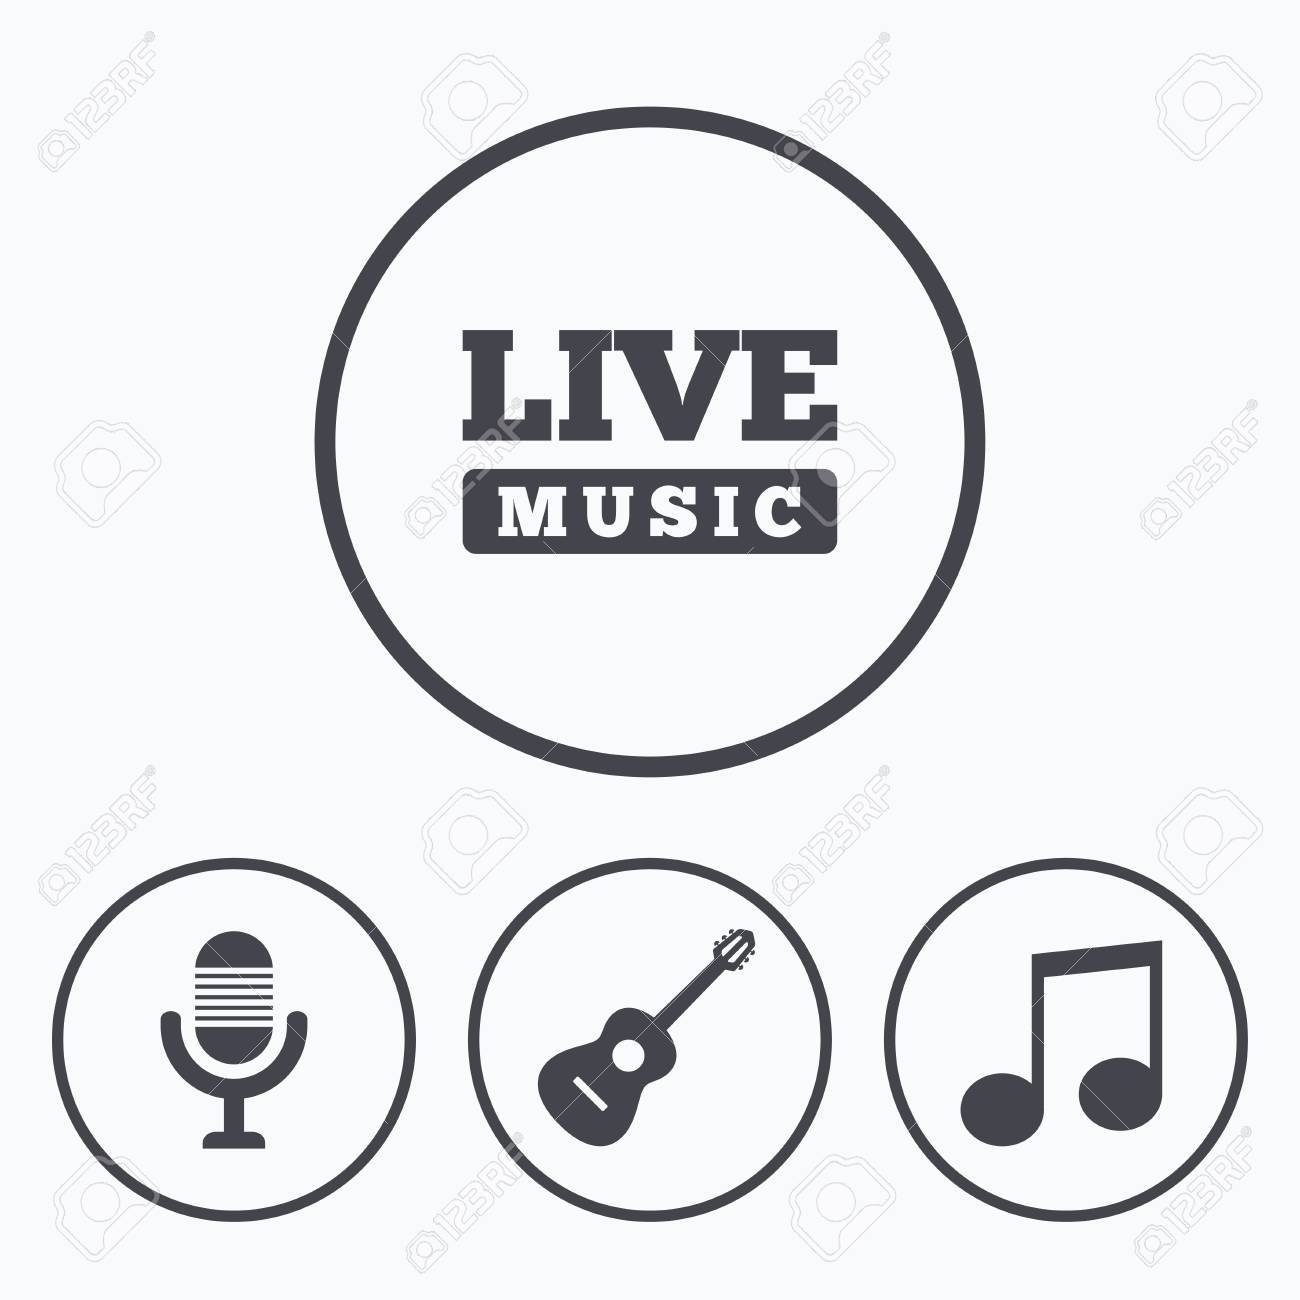 Musical elements icons microphone and live music symbols music musical elements icons microphone and live music symbols music note and acoustic guitar signs buycottarizona